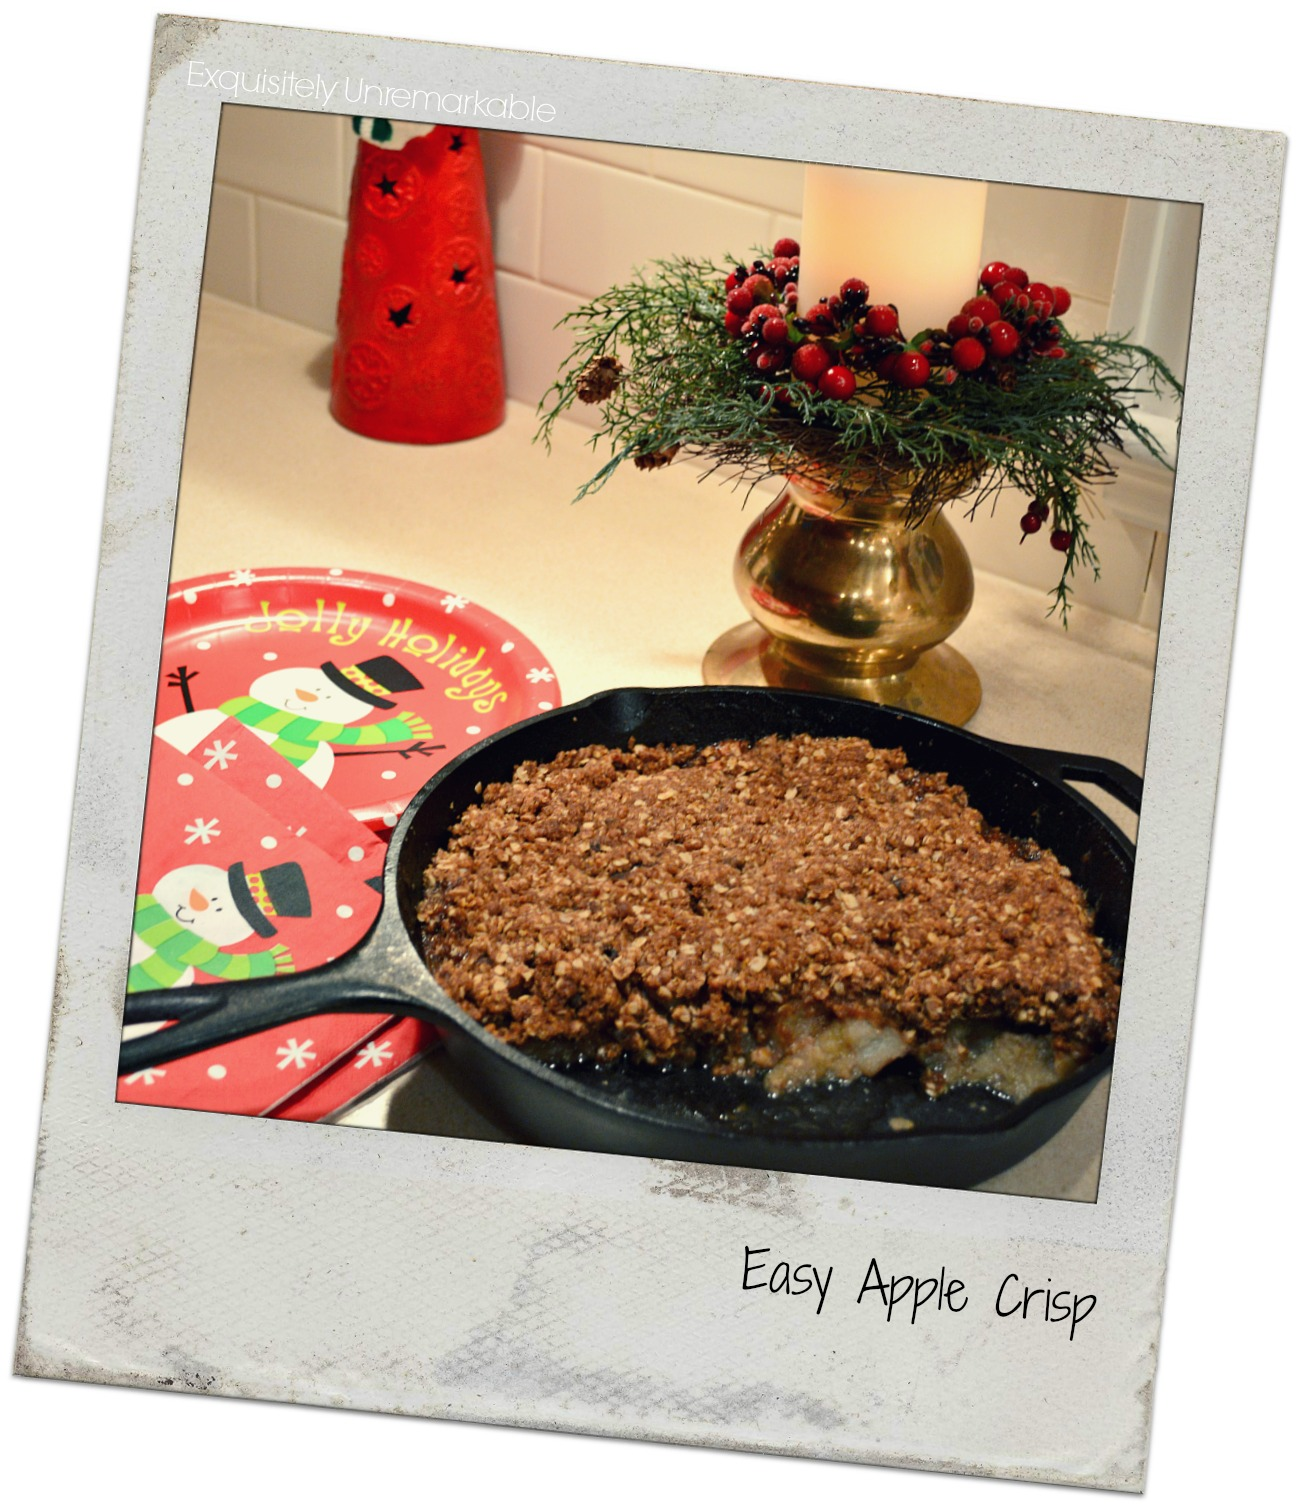 Cast Iron Pan Apple Crisp Recipe